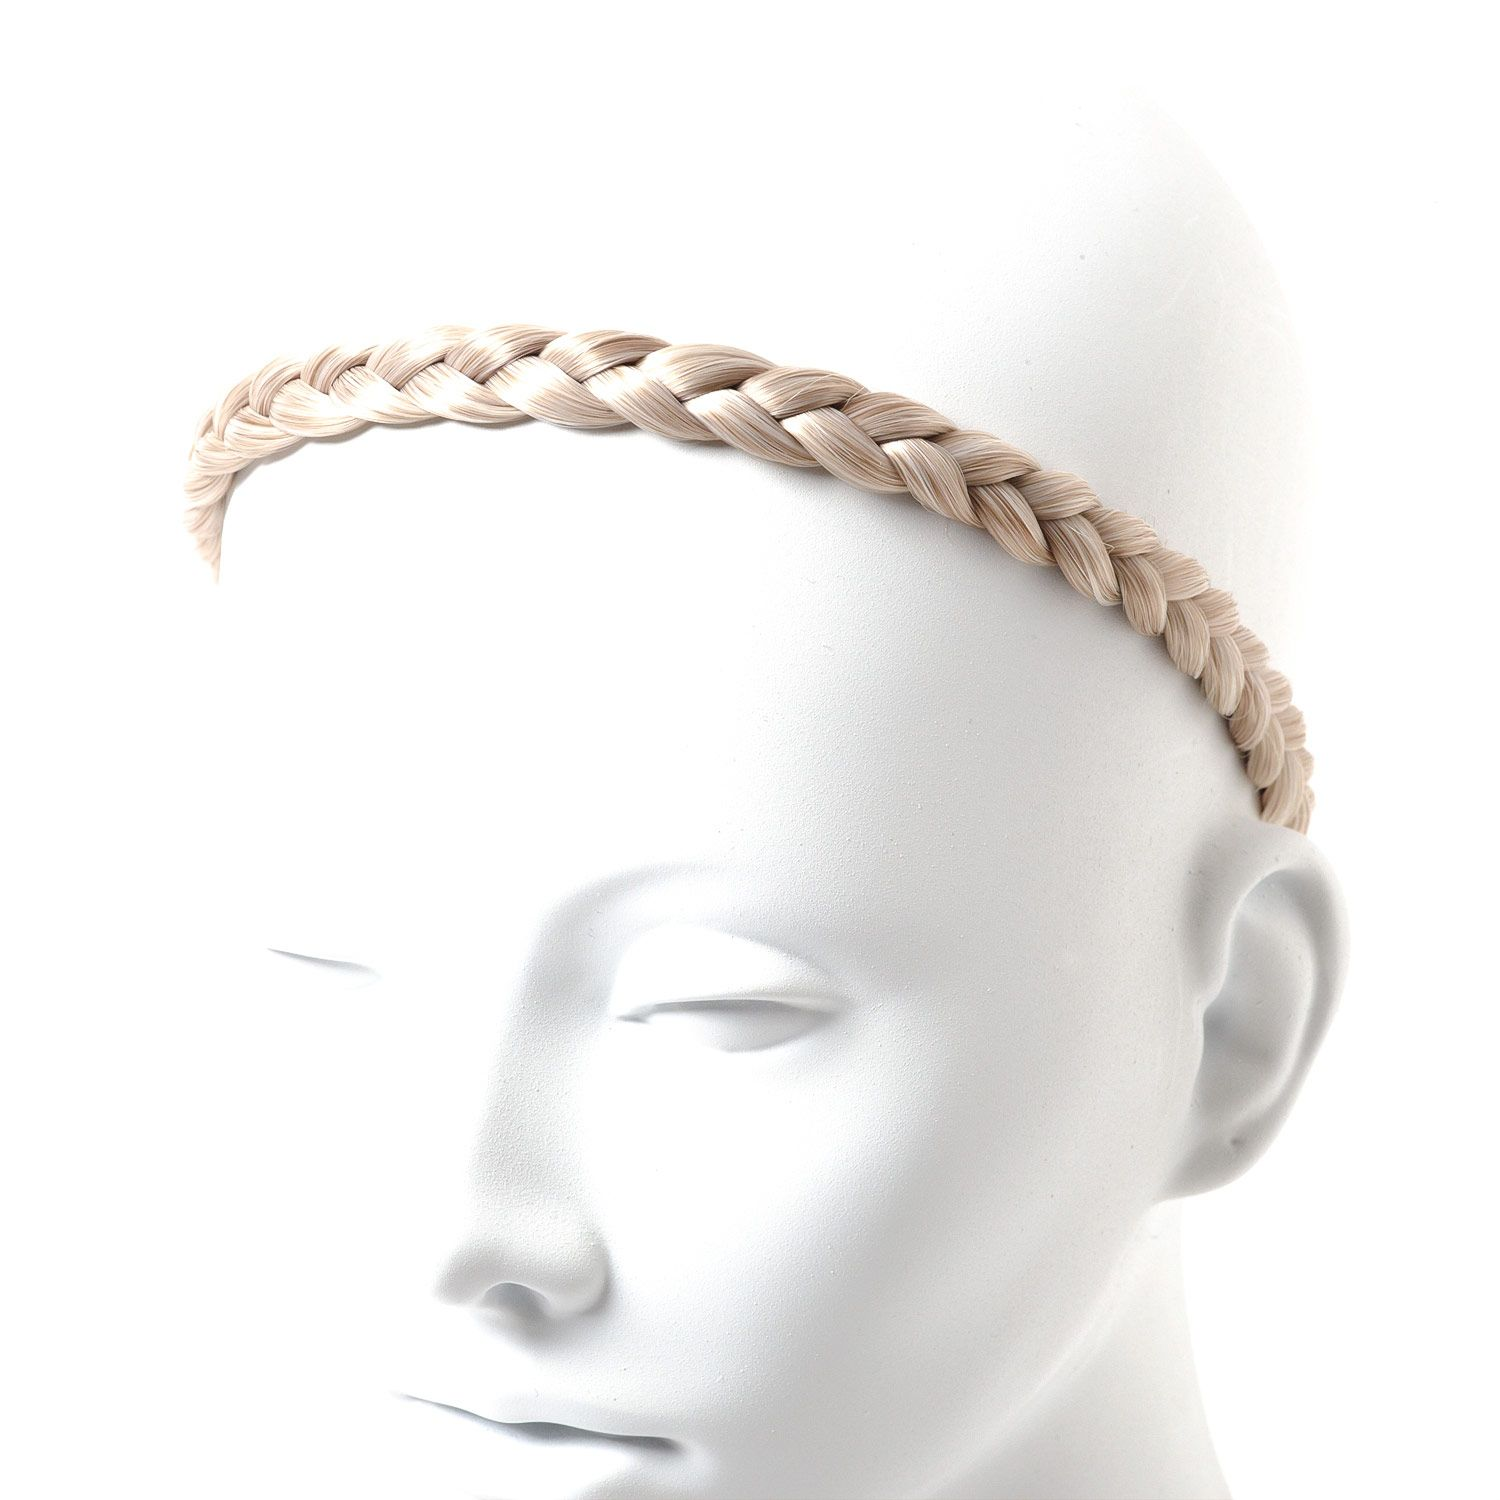 Plaited Head Wrap, Dance, Headwraps, Accessories, Hair, all, Hair, Faux Hair, Headbands Fashion trends, accessories and jewellery for young women